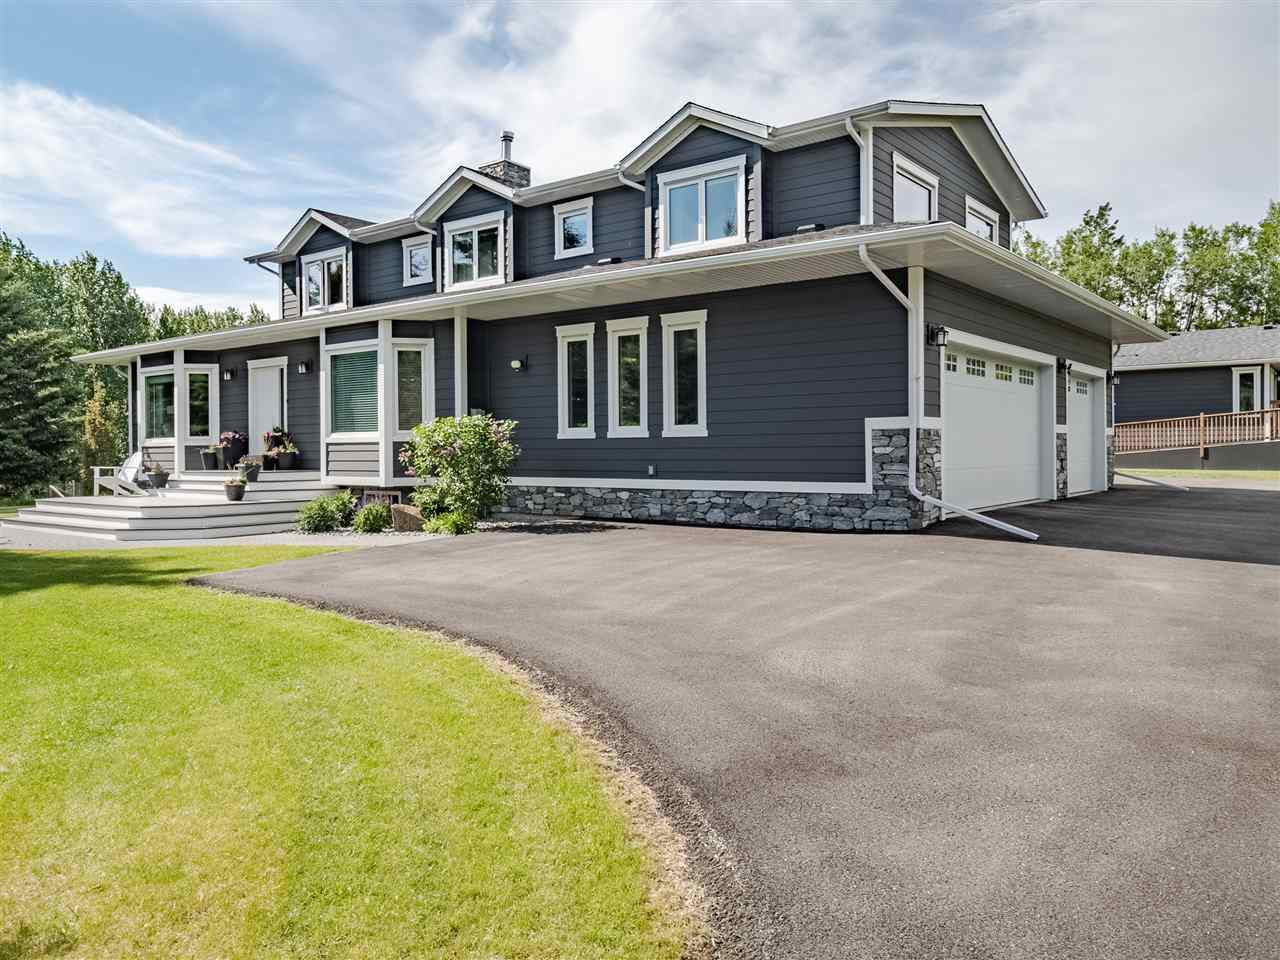 Main Photo: 182 52514 RGE RD 223: Rural Strathcona County House for sale : MLS®# E4161958